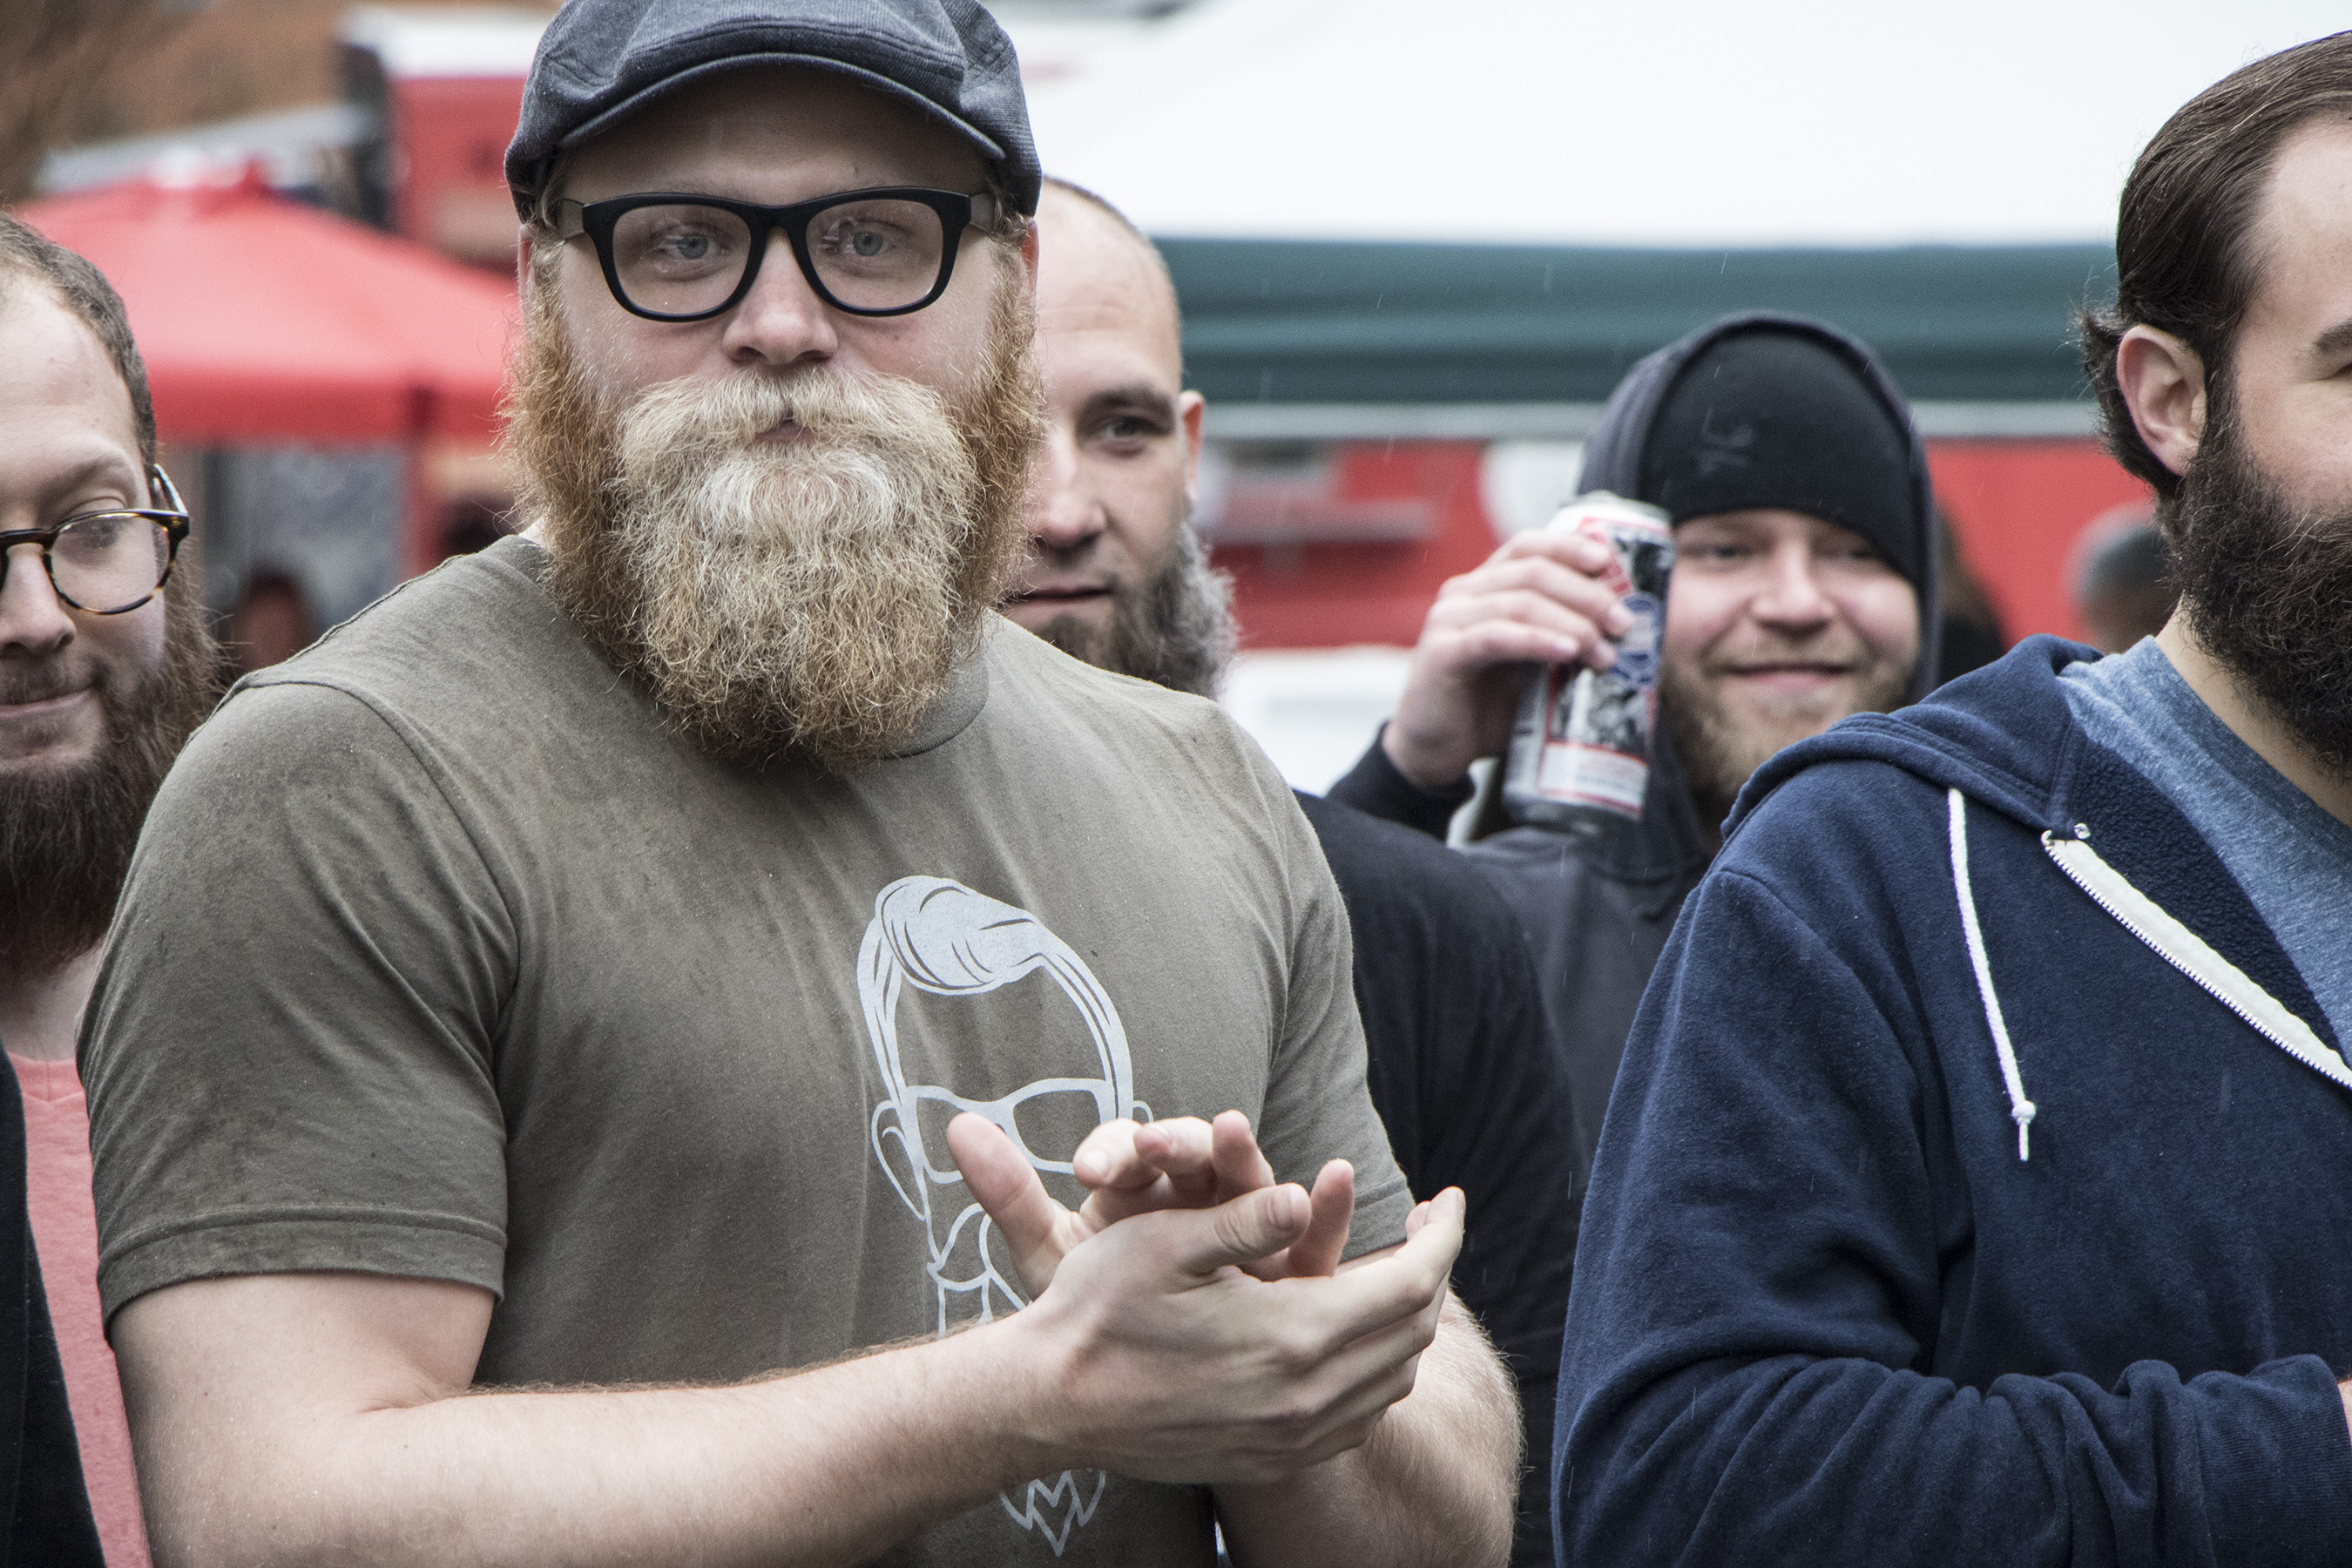 To celebrate Philadelphia's No. 1 ranking as the 'Most Facial Hair Friendly Cities in America,' Wahl will be sponsoring The Philadelphia Beard Festival on Sunday, April 29, 2018.